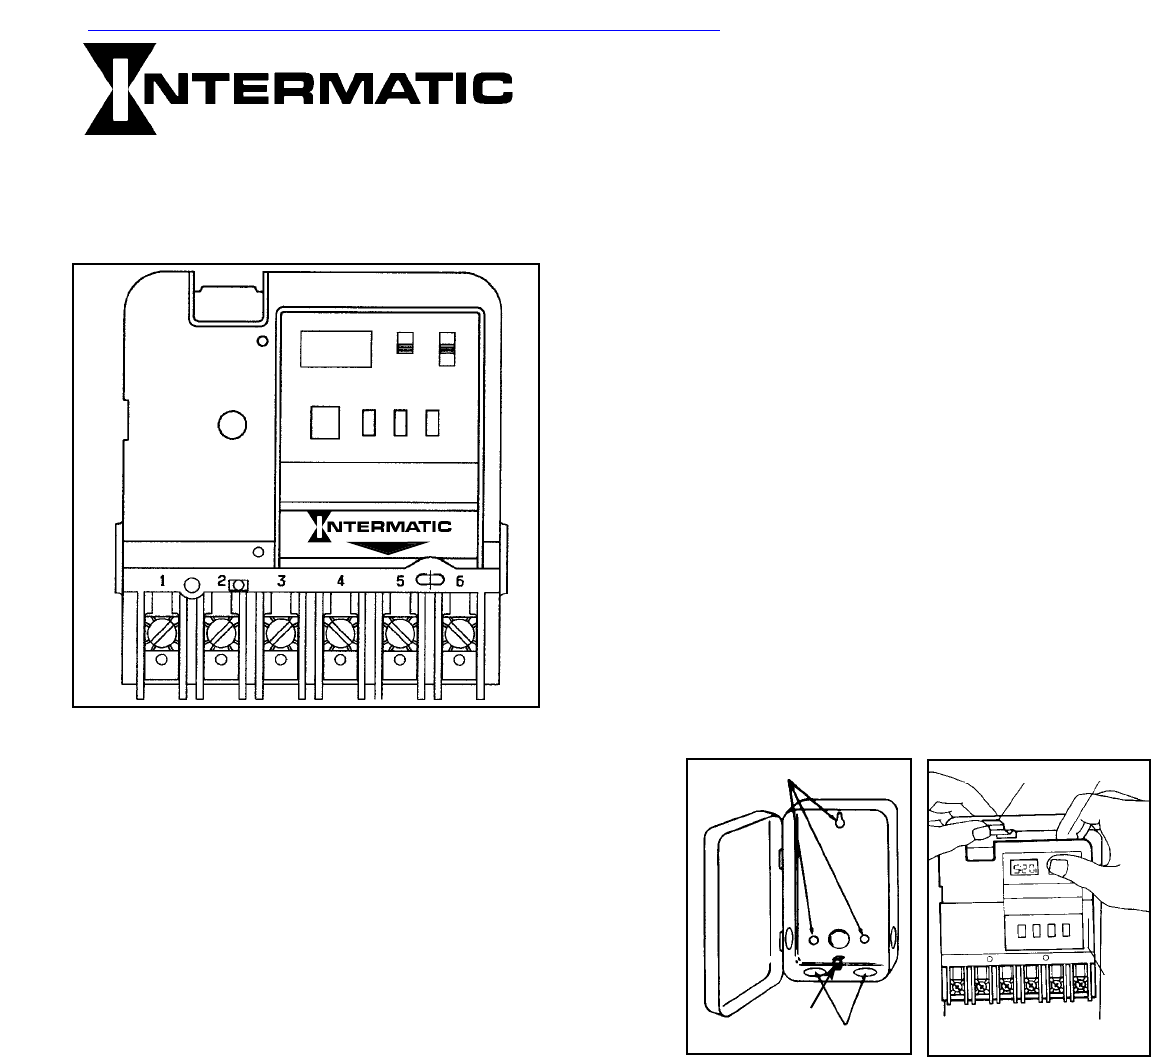 Intermatic Eh40 Wiring Diagram from www.manualsearcher.com